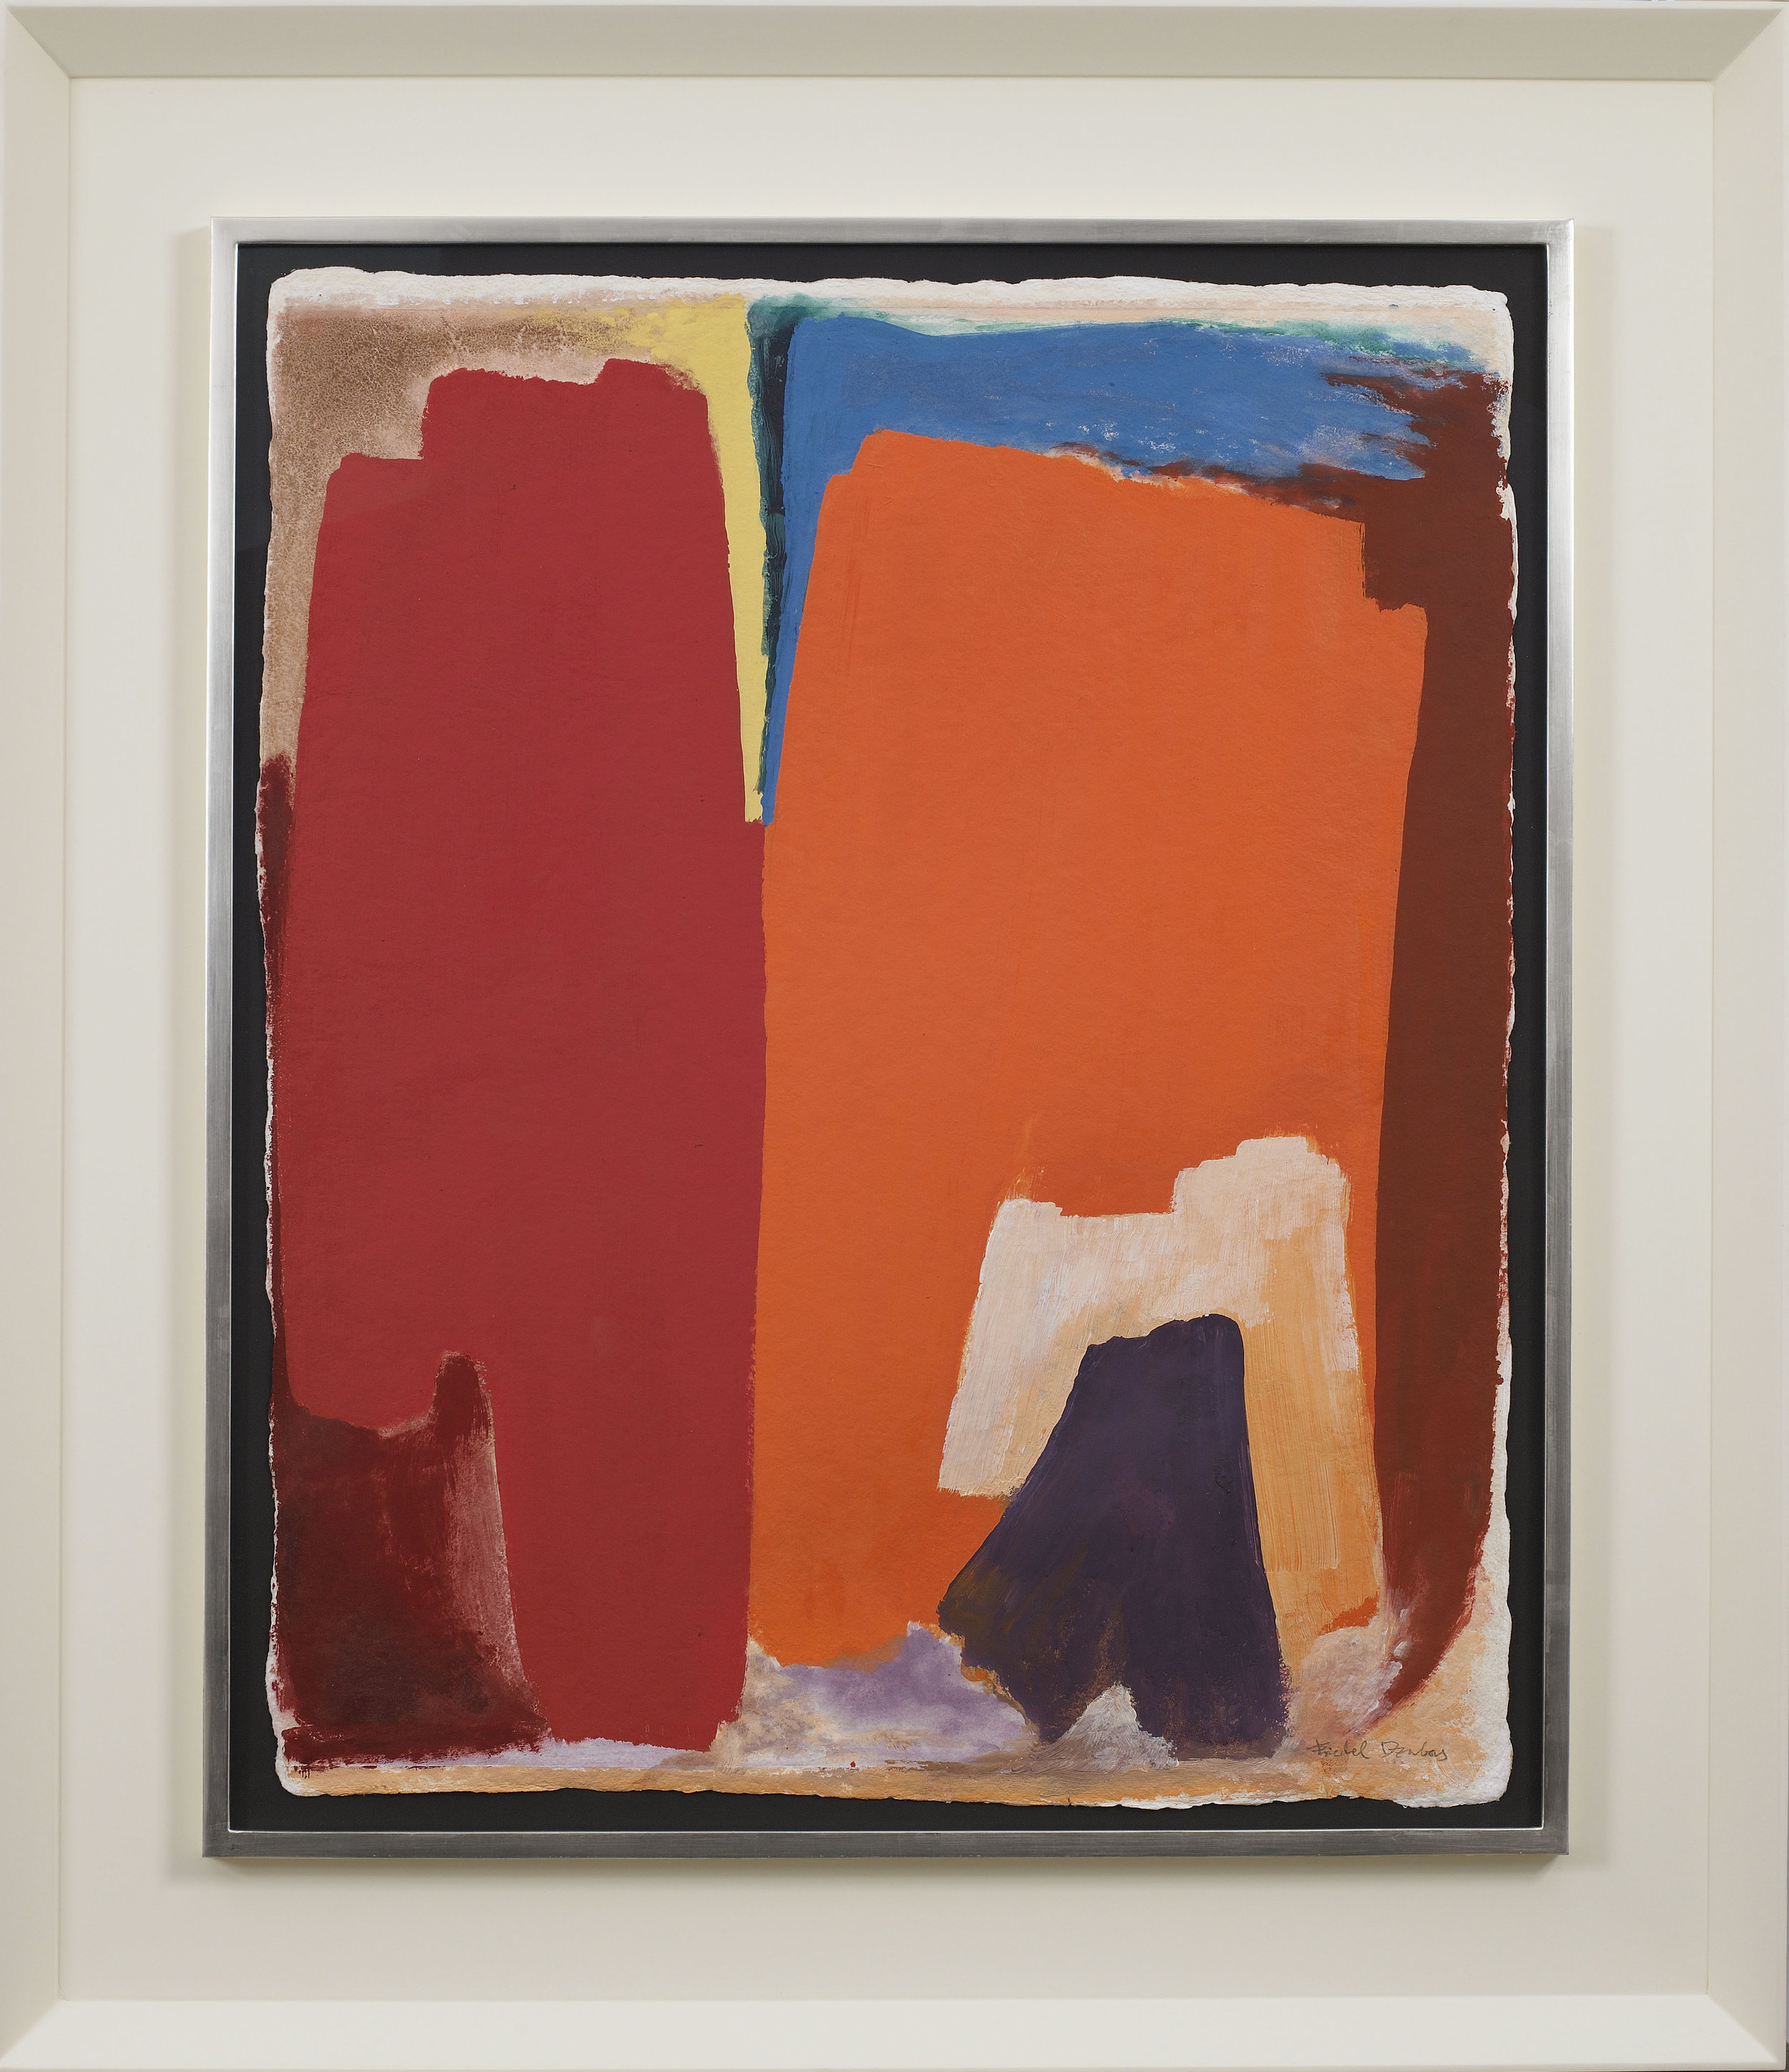 Friedel Dzubas  , Untitled, 1979 , acrylic on handmade paper, 30 1/2 x 24 3/4 inches